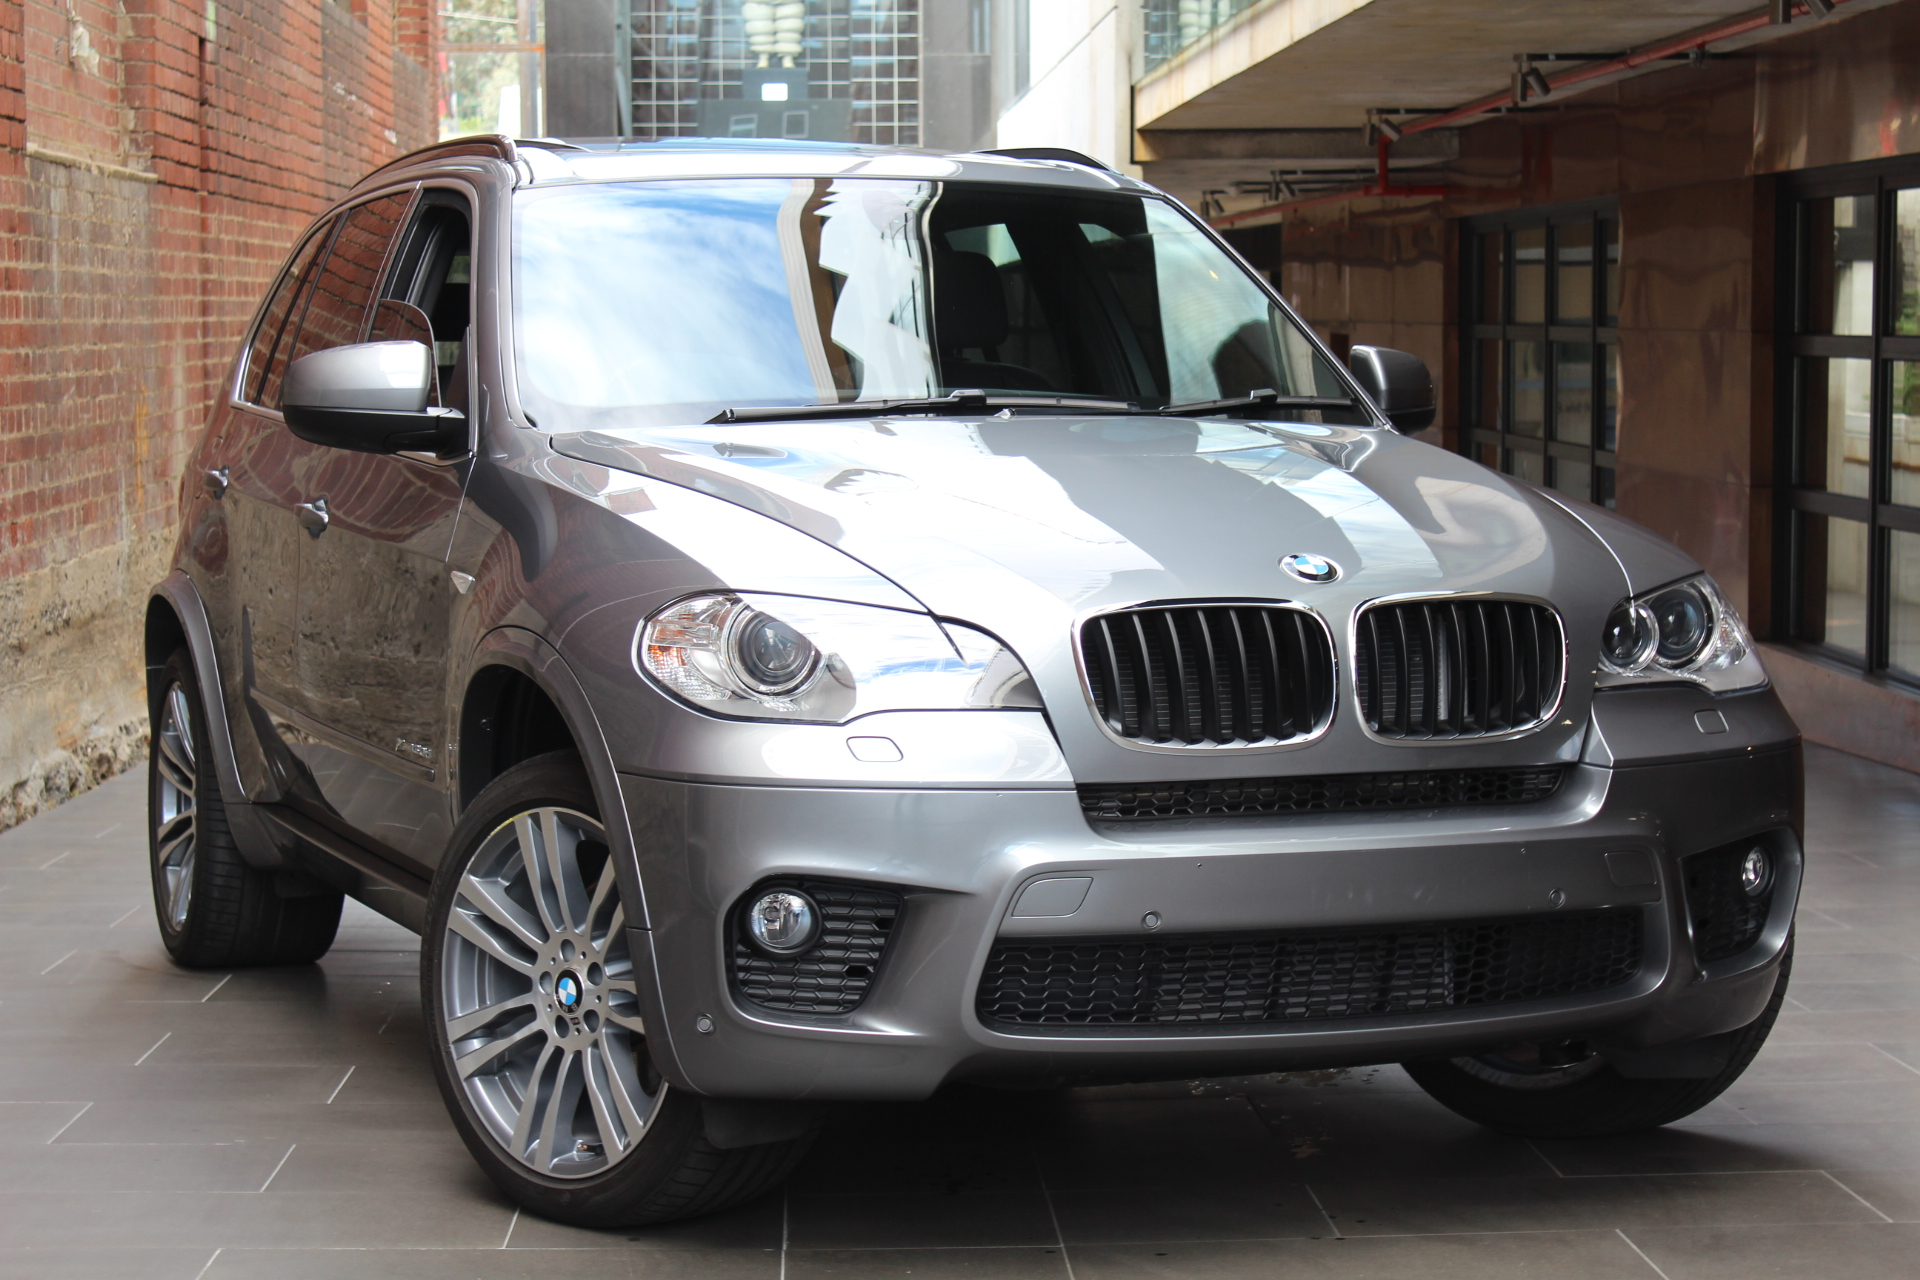 2012 BMW X5 E70- sold in Australia